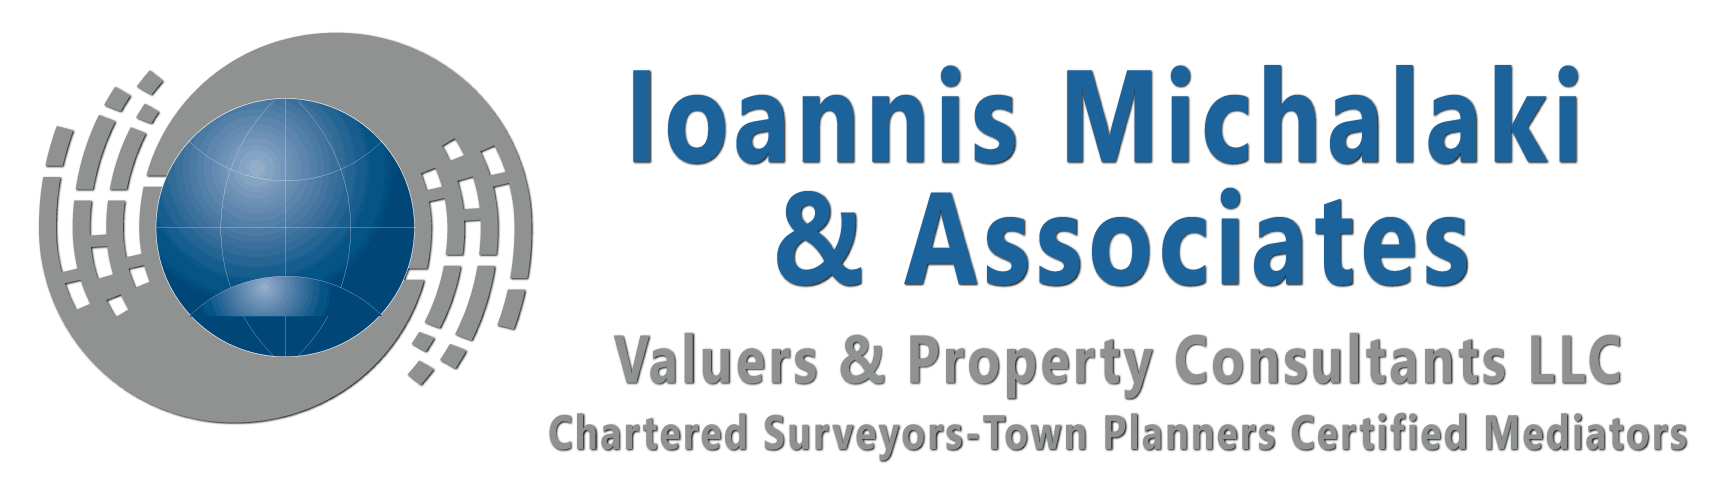 Ioannis-Michalaki-Valuers